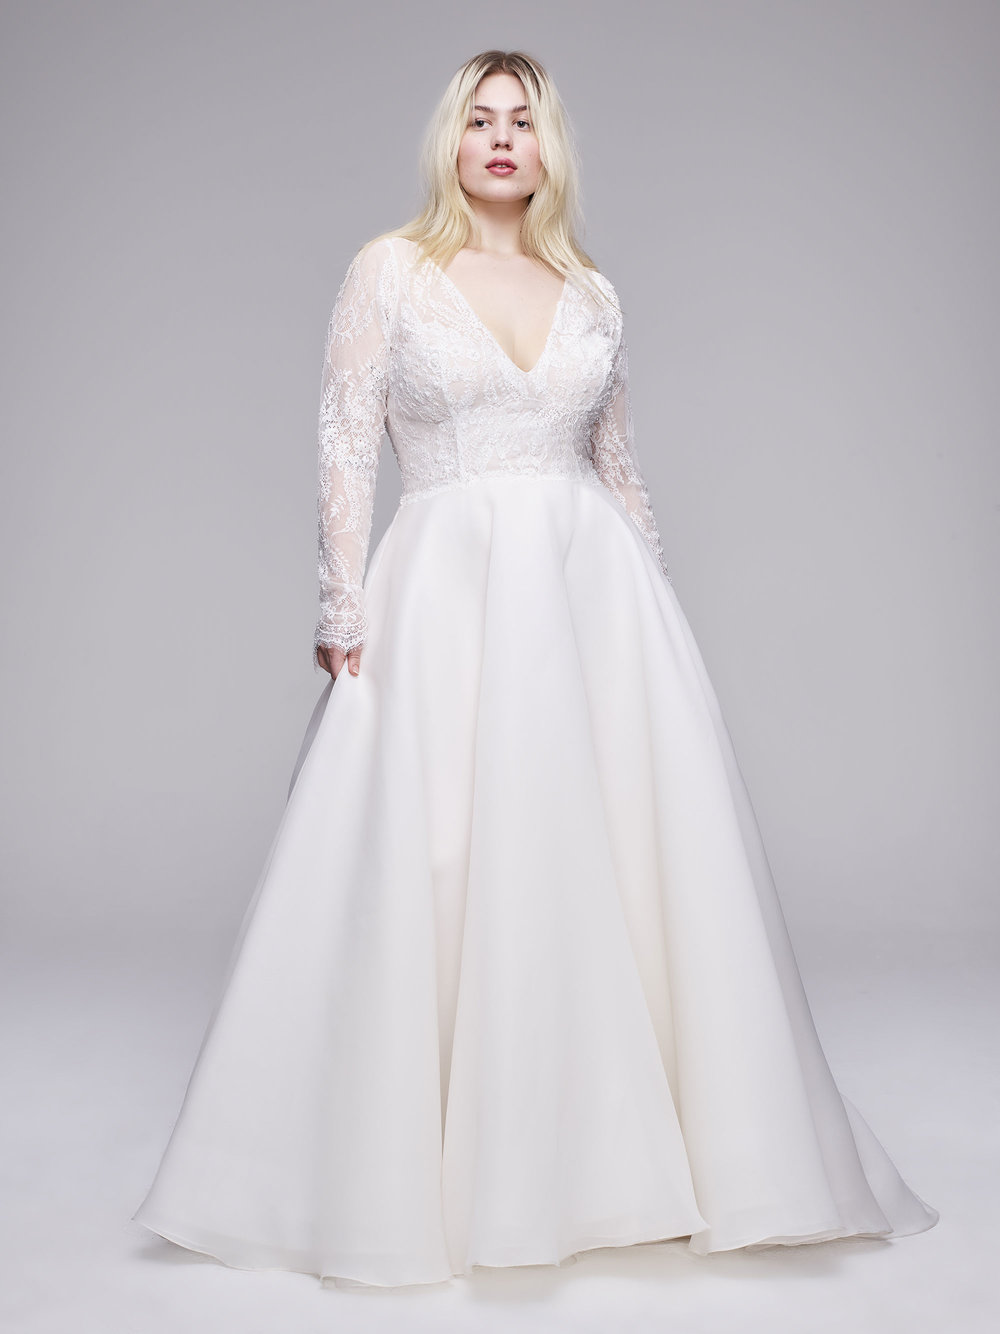 The Chrissy Plus size wedding gown from Curve Couture by Anne Barge